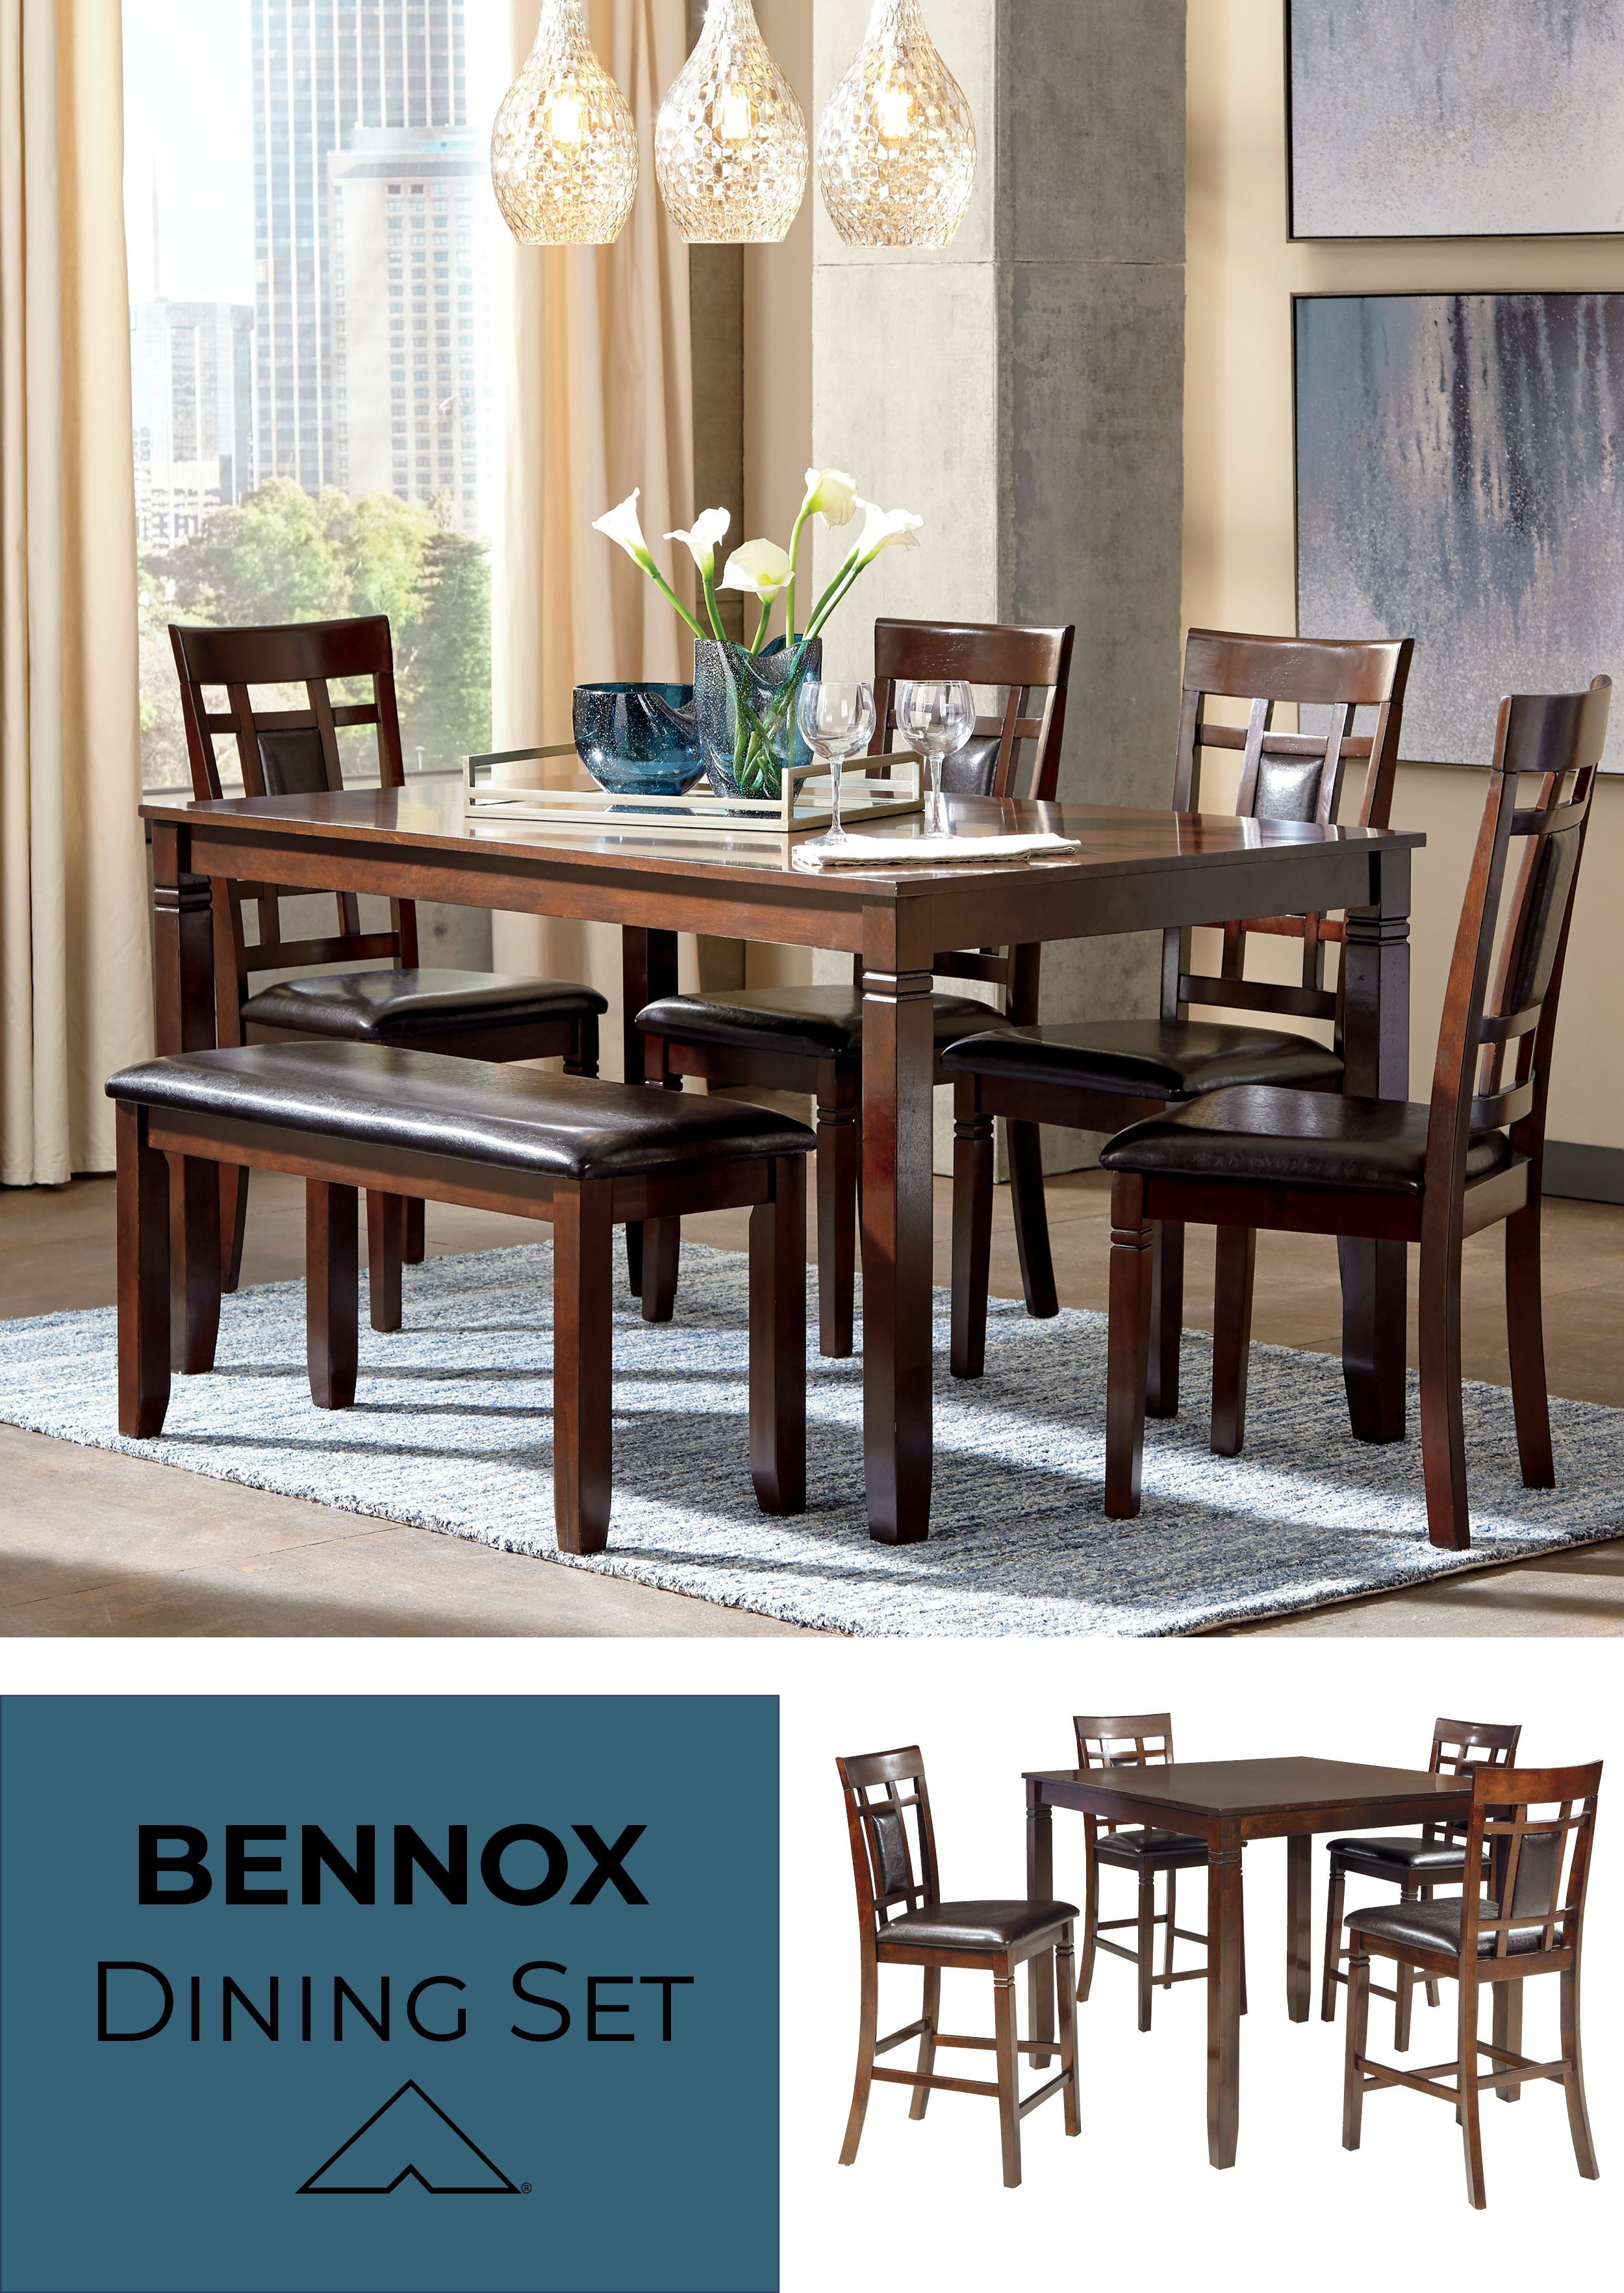 ralene dining table set on bennox brown dining room table set by ashley furniture ashleyfurniture homedecor homedecoride brown dining room table brown dining room dining room table pinterest